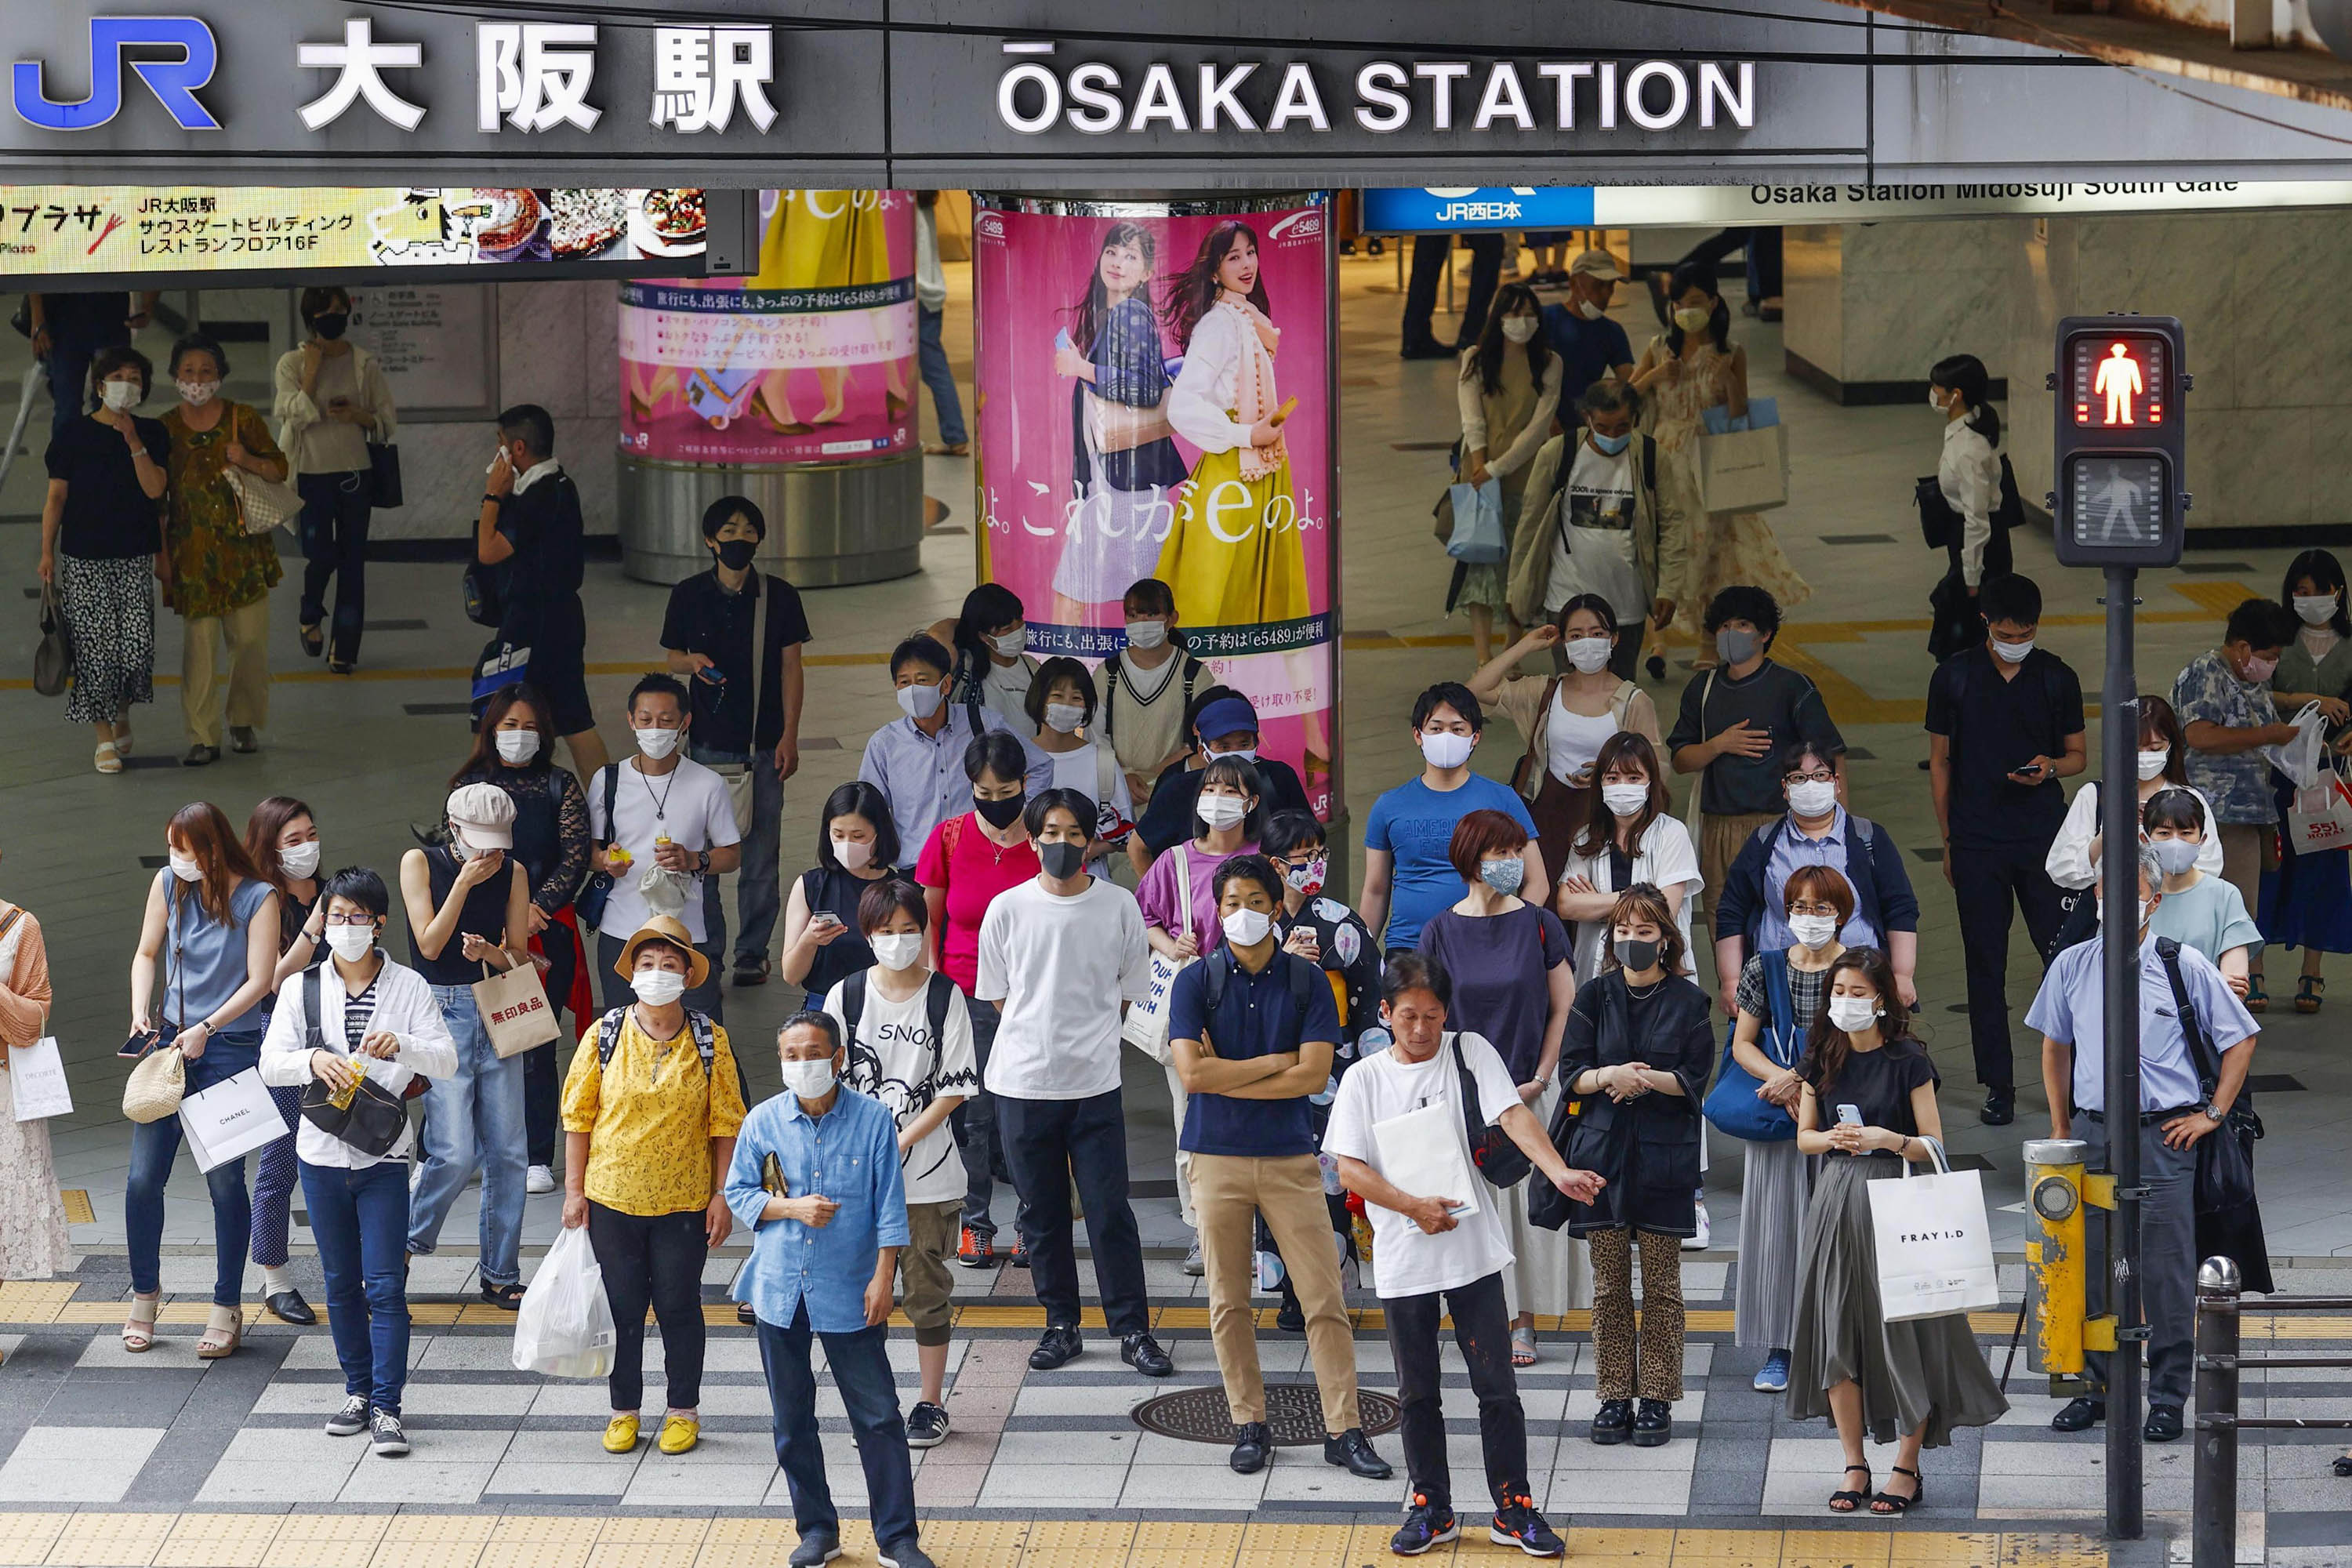 People wearing face masks are seen in front of Osaka Station on July 22, amid the spread of the novel coronavirus.